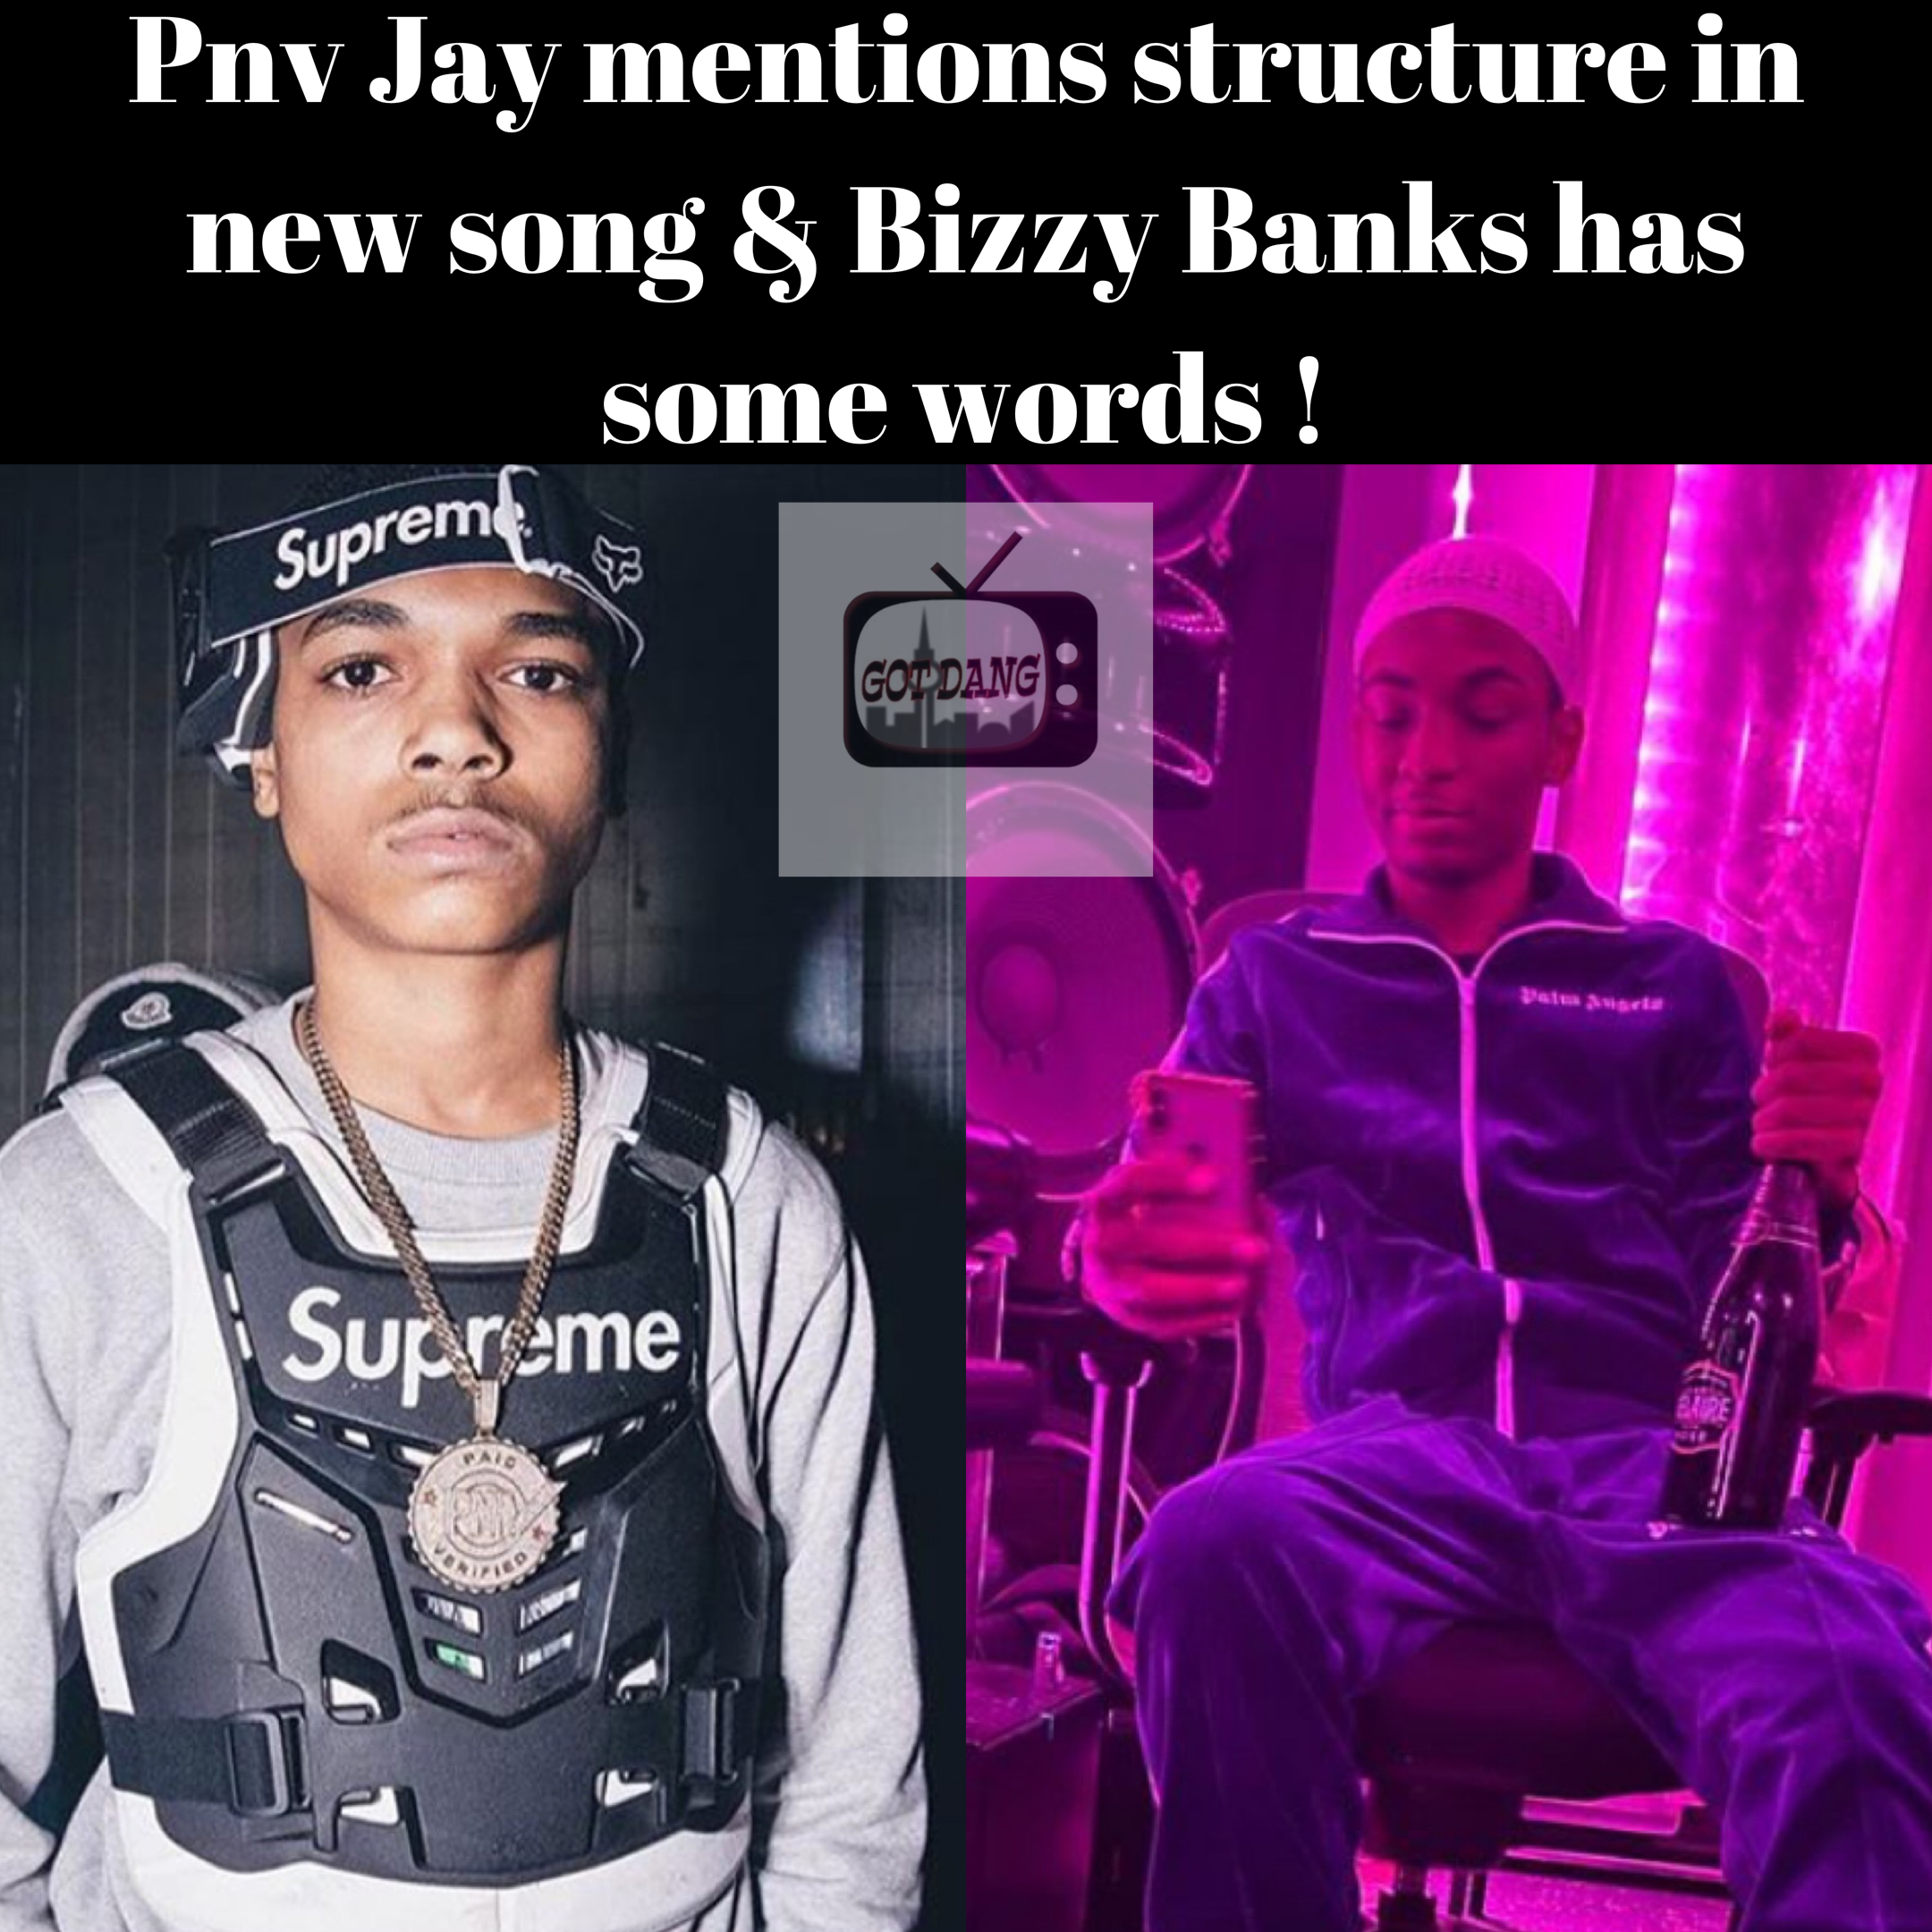 Pnv jay mentions structure & Bizzy responds